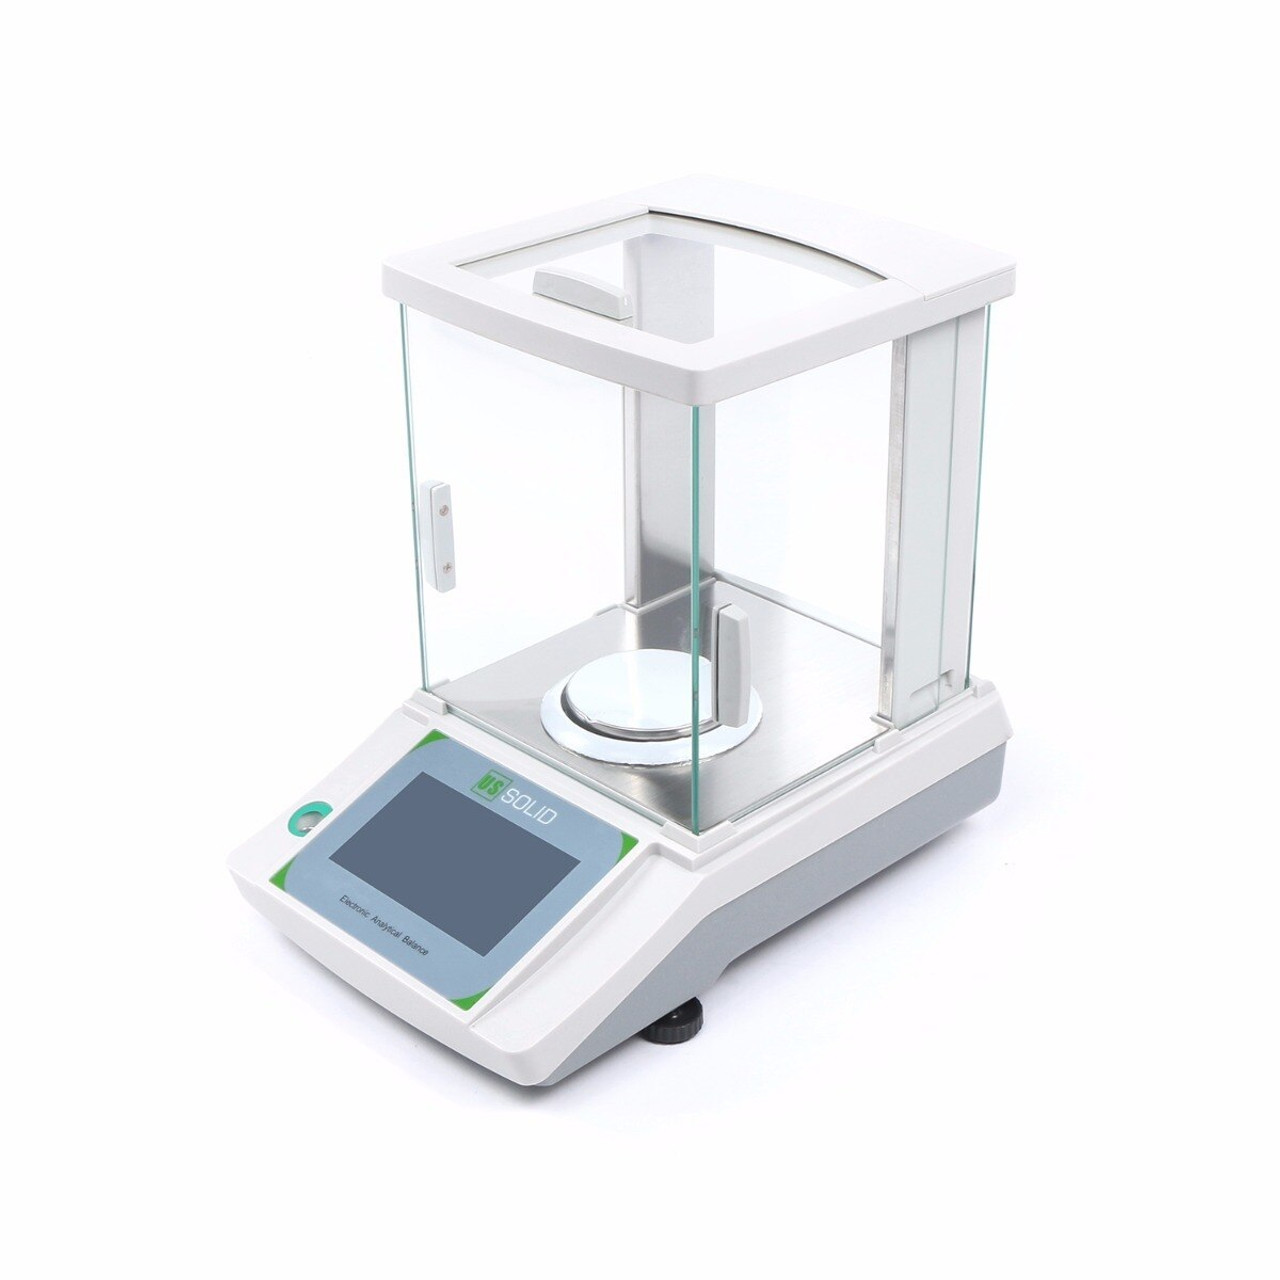 0.1mg Mobile-controlled Analytical Balance, 0.0001g x 200g Bluetooth-connected Lab Precision Balance, Touch Screen